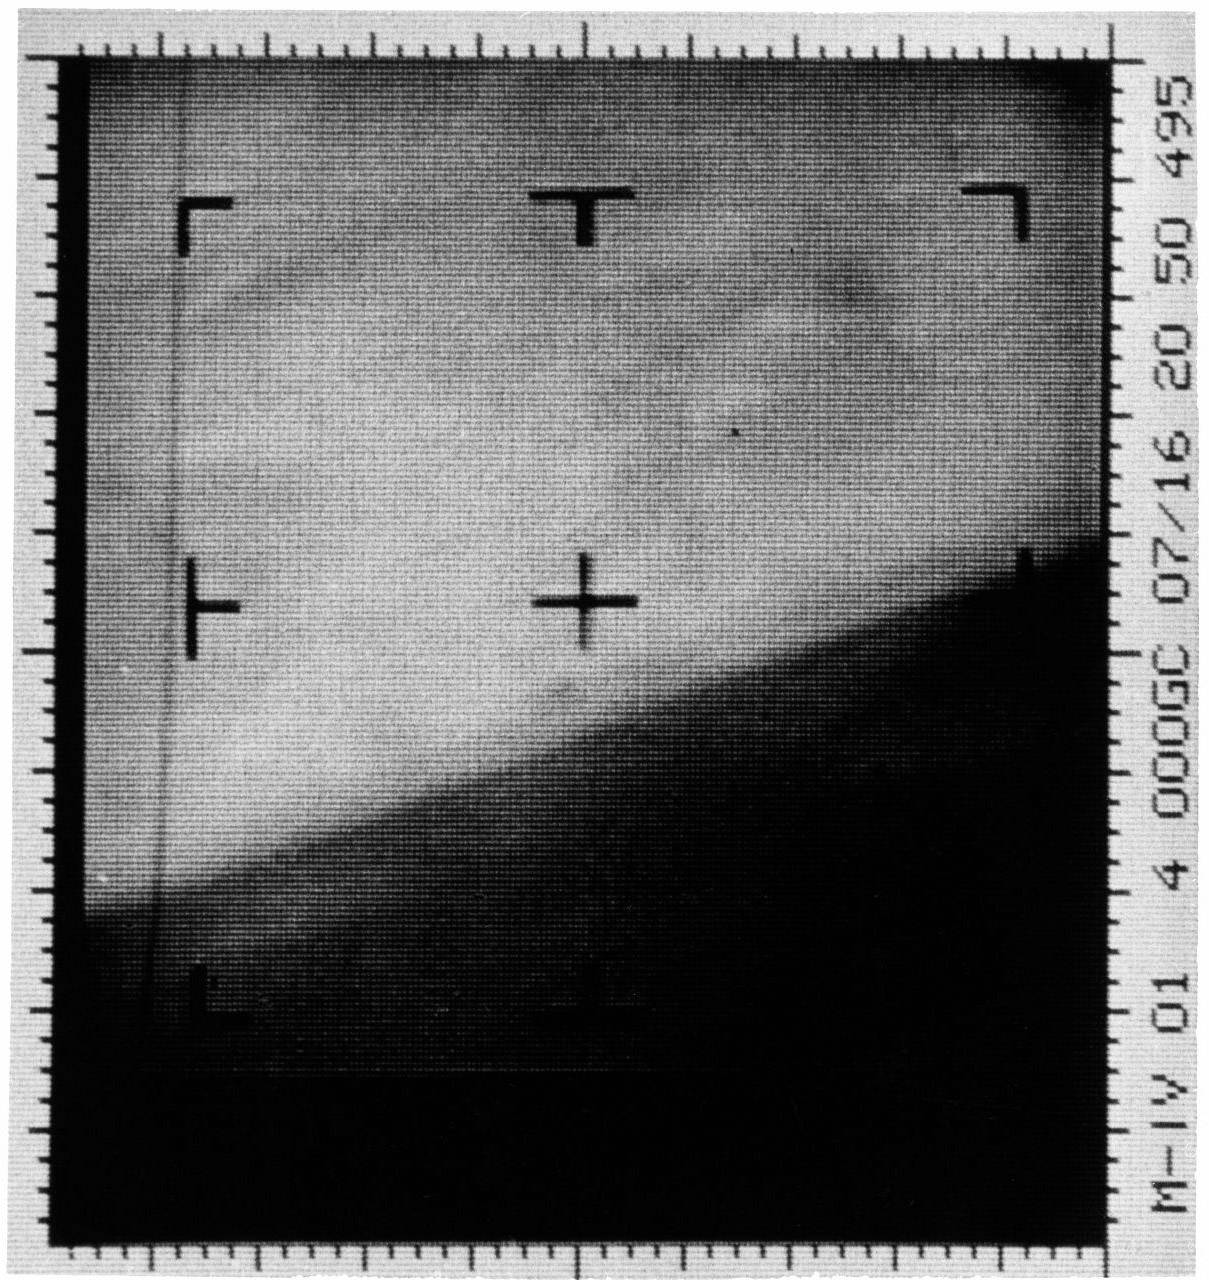 An enhanced contrast version of the first Mars photograph released on July 15, 1965